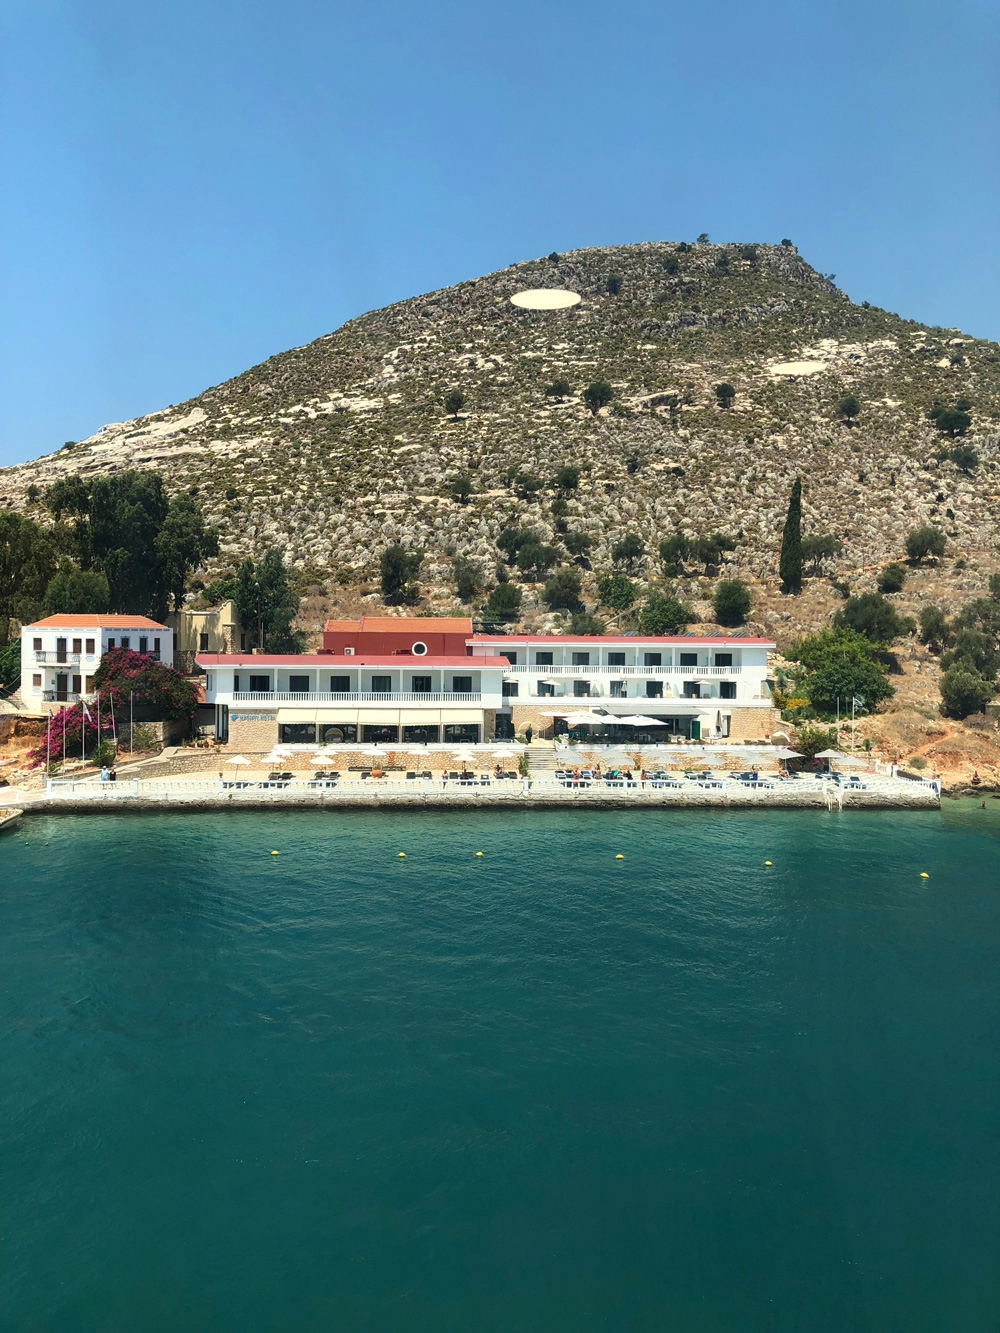 A view of the Megisti Hotel from the harbor. The long white building sits at the base of a mountain and offers sun loungers and umbrellas along the shoreline